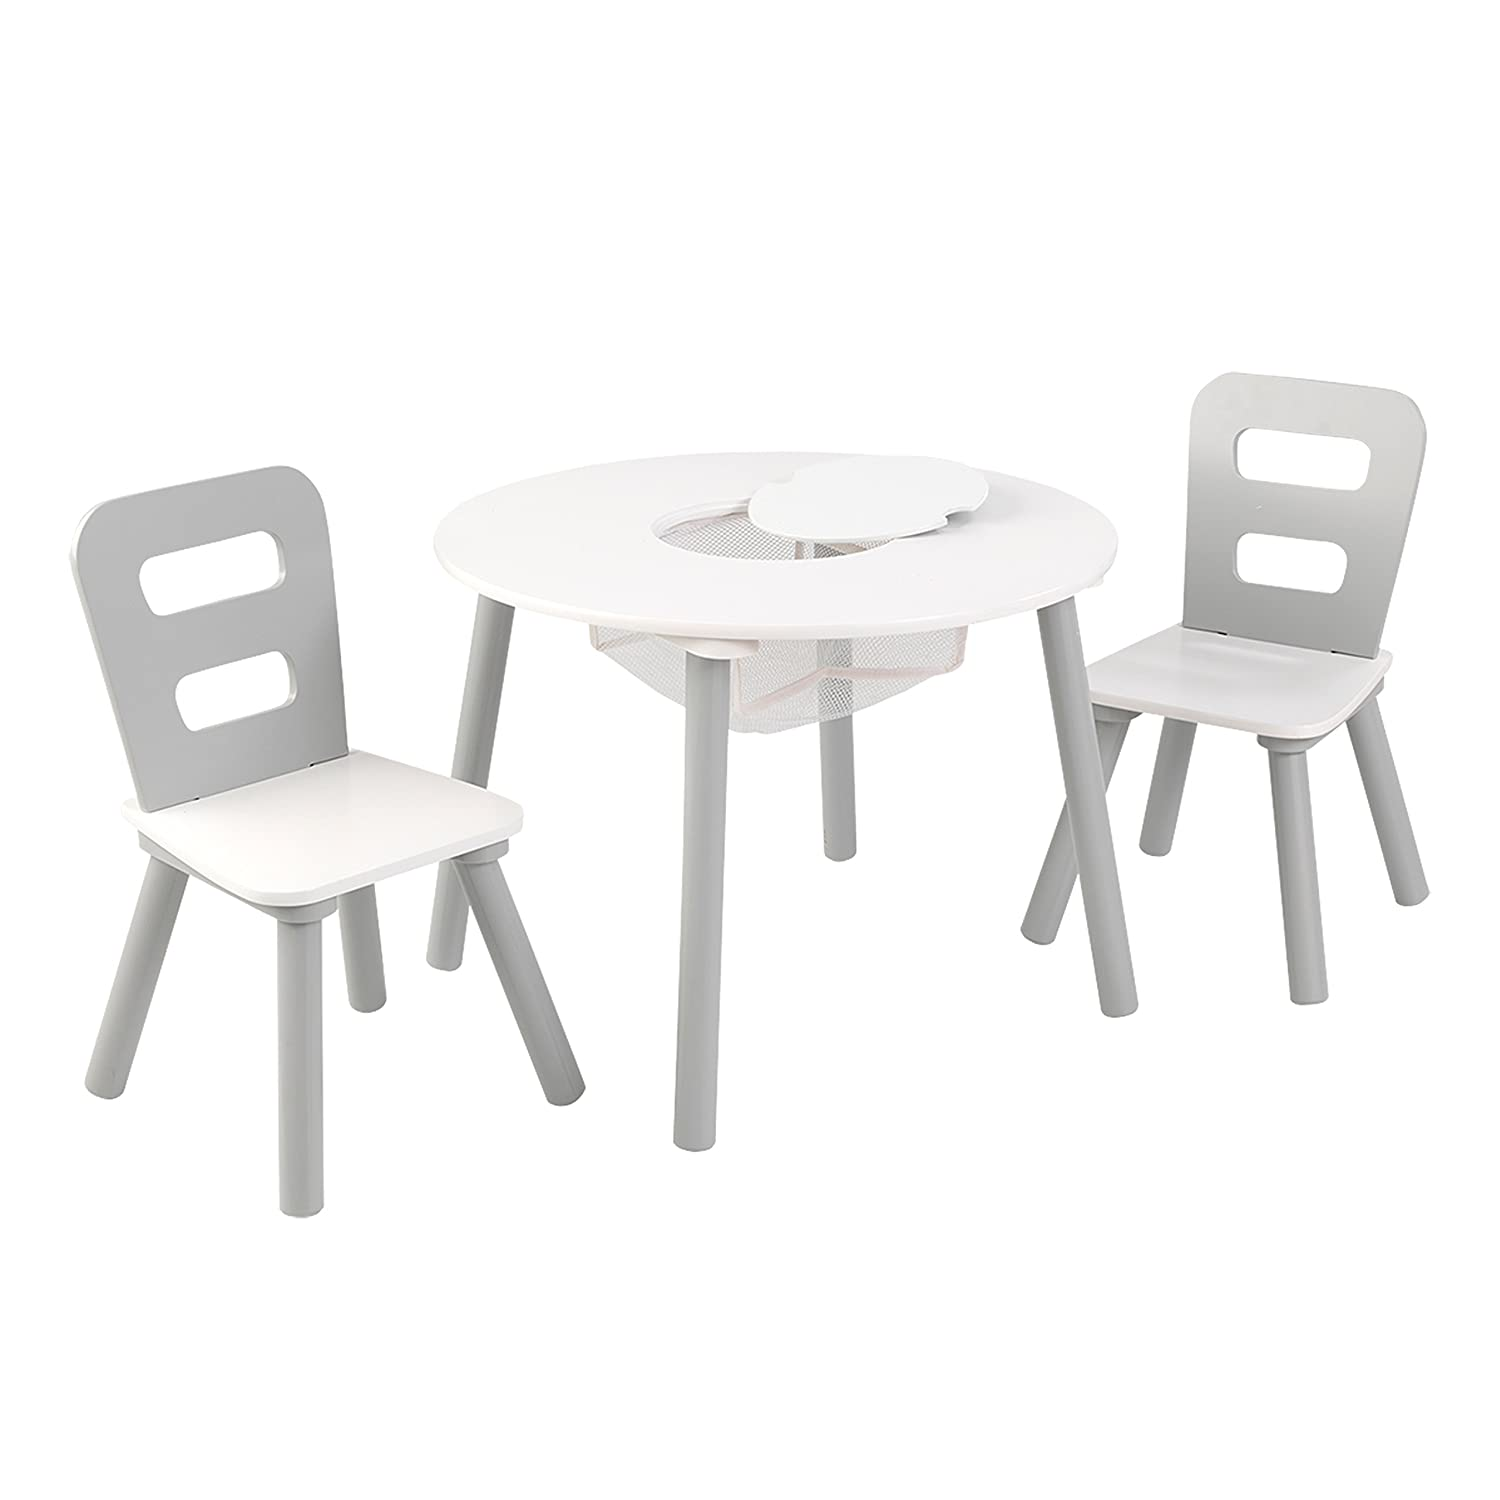 Round Table and 2 Chair Set - Grey Kidkraft